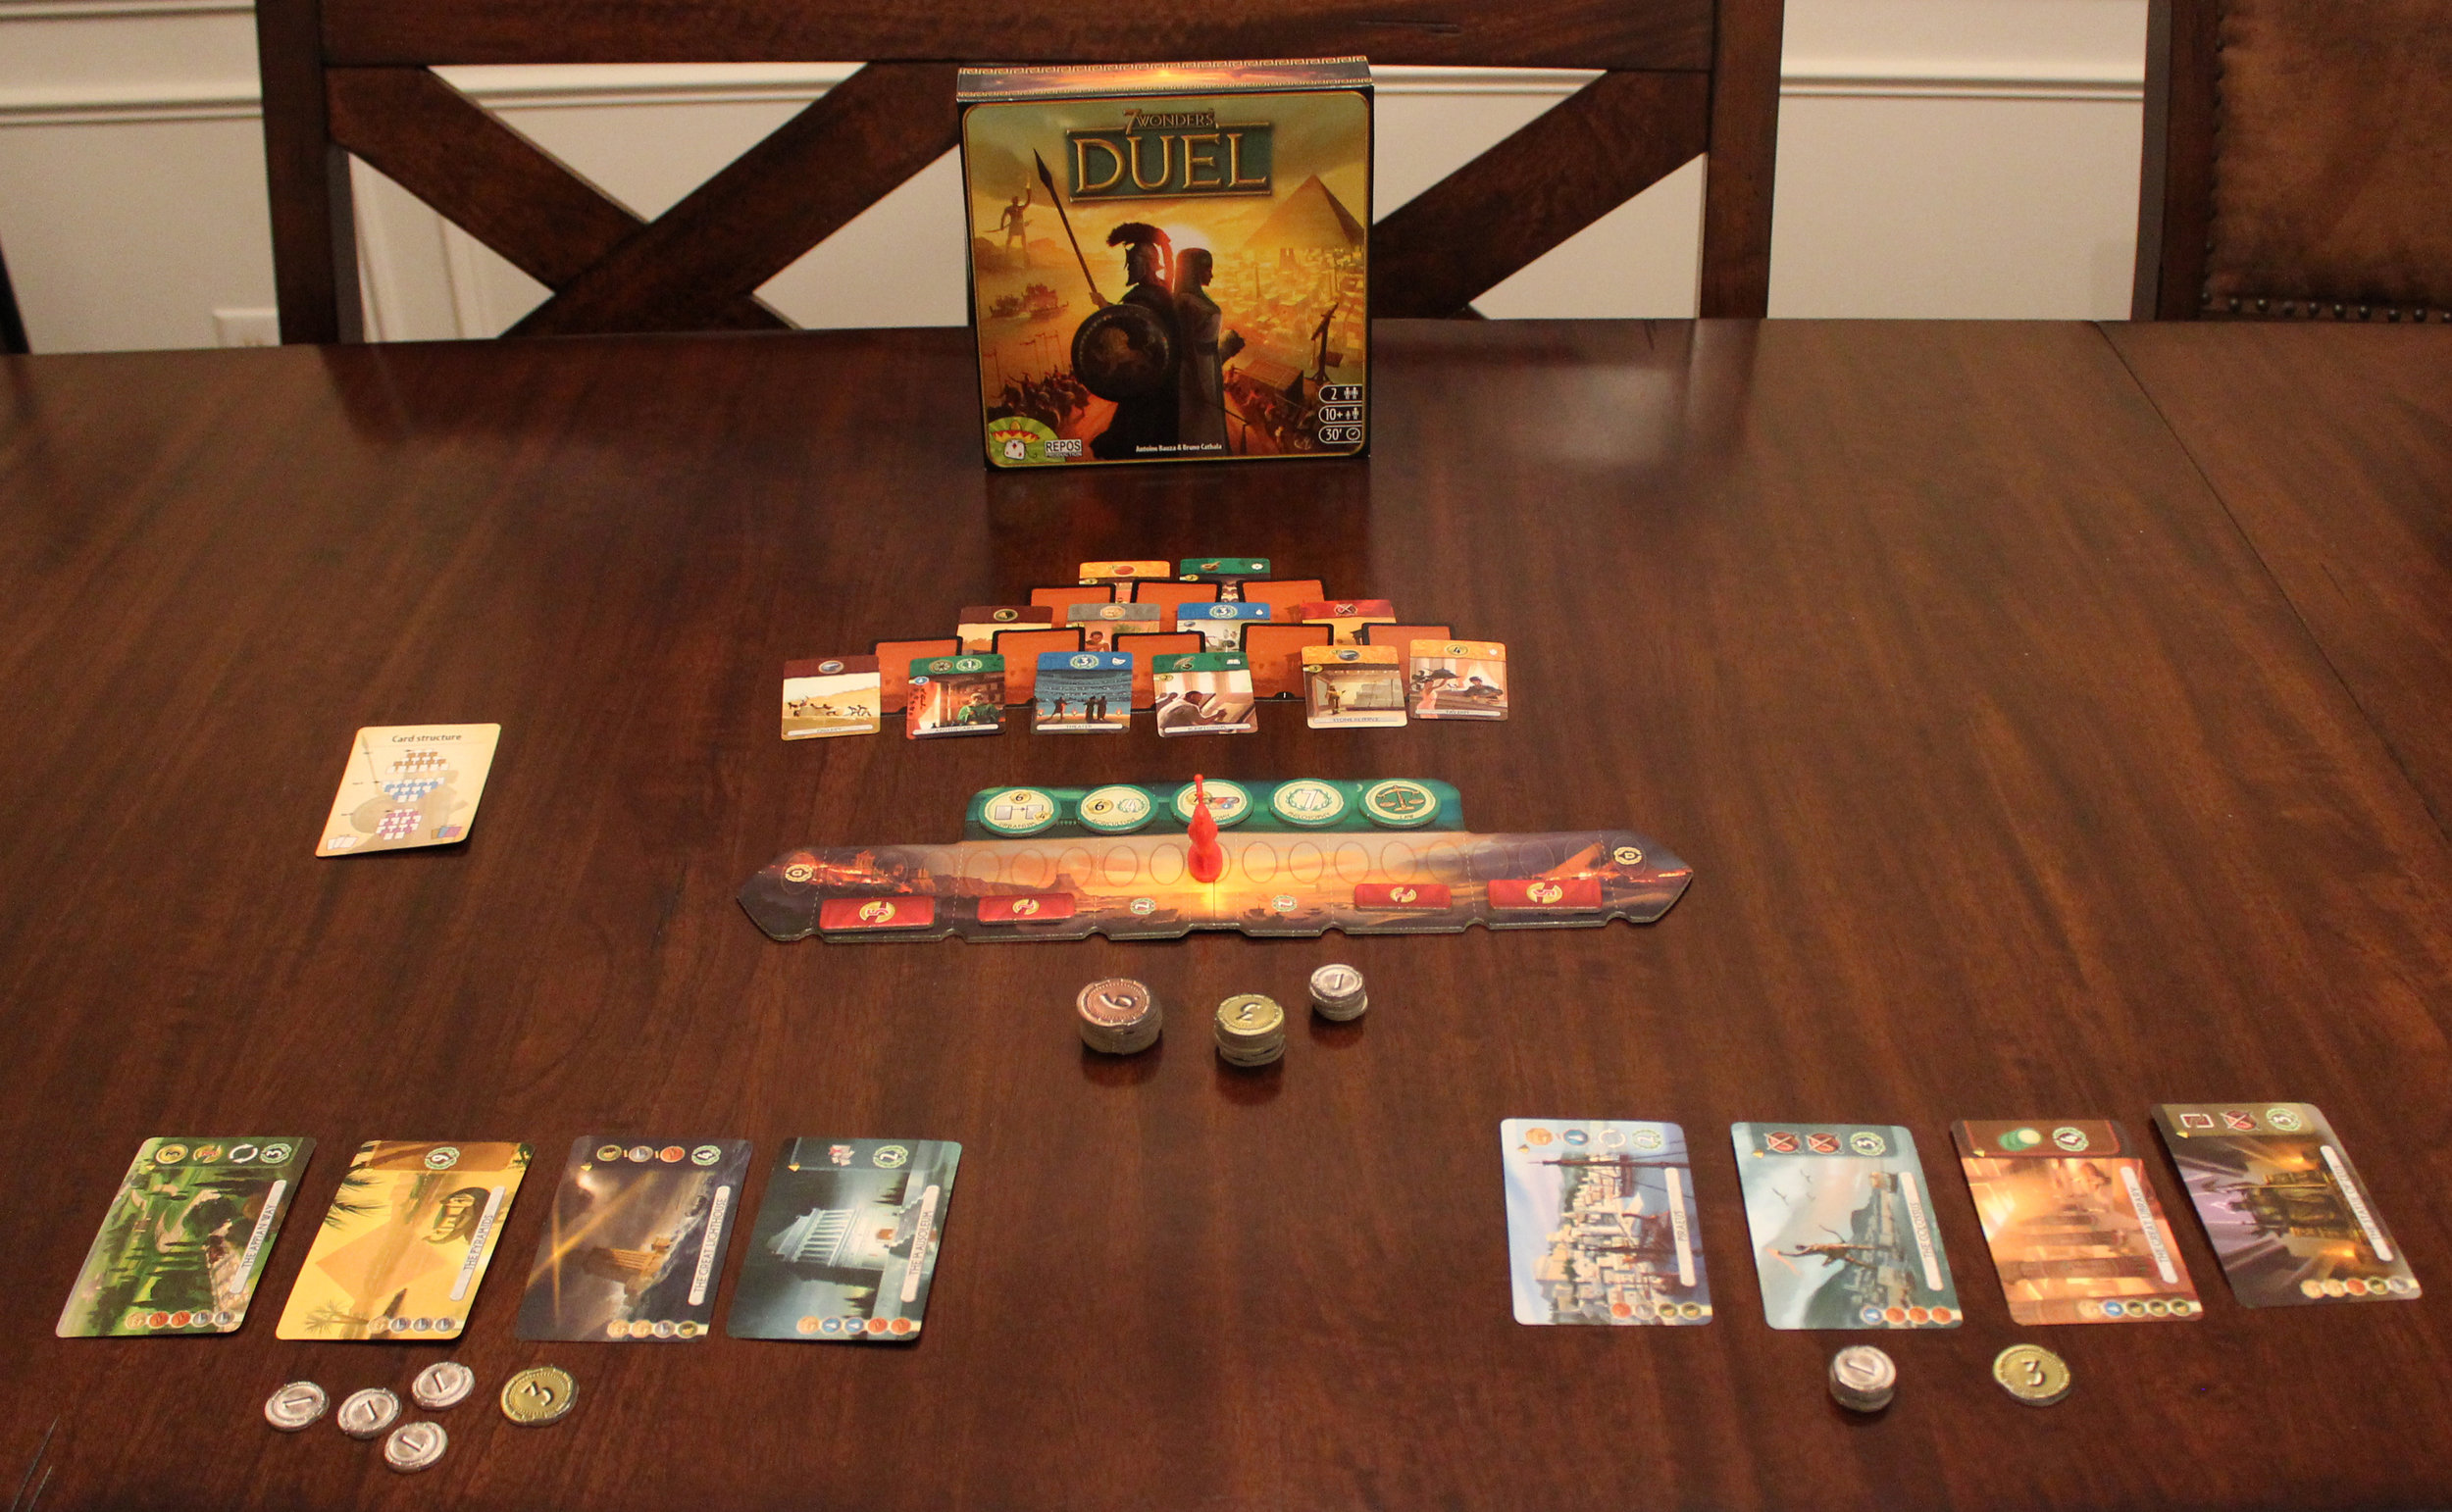 7 Wonders Duel all set up for the first round.